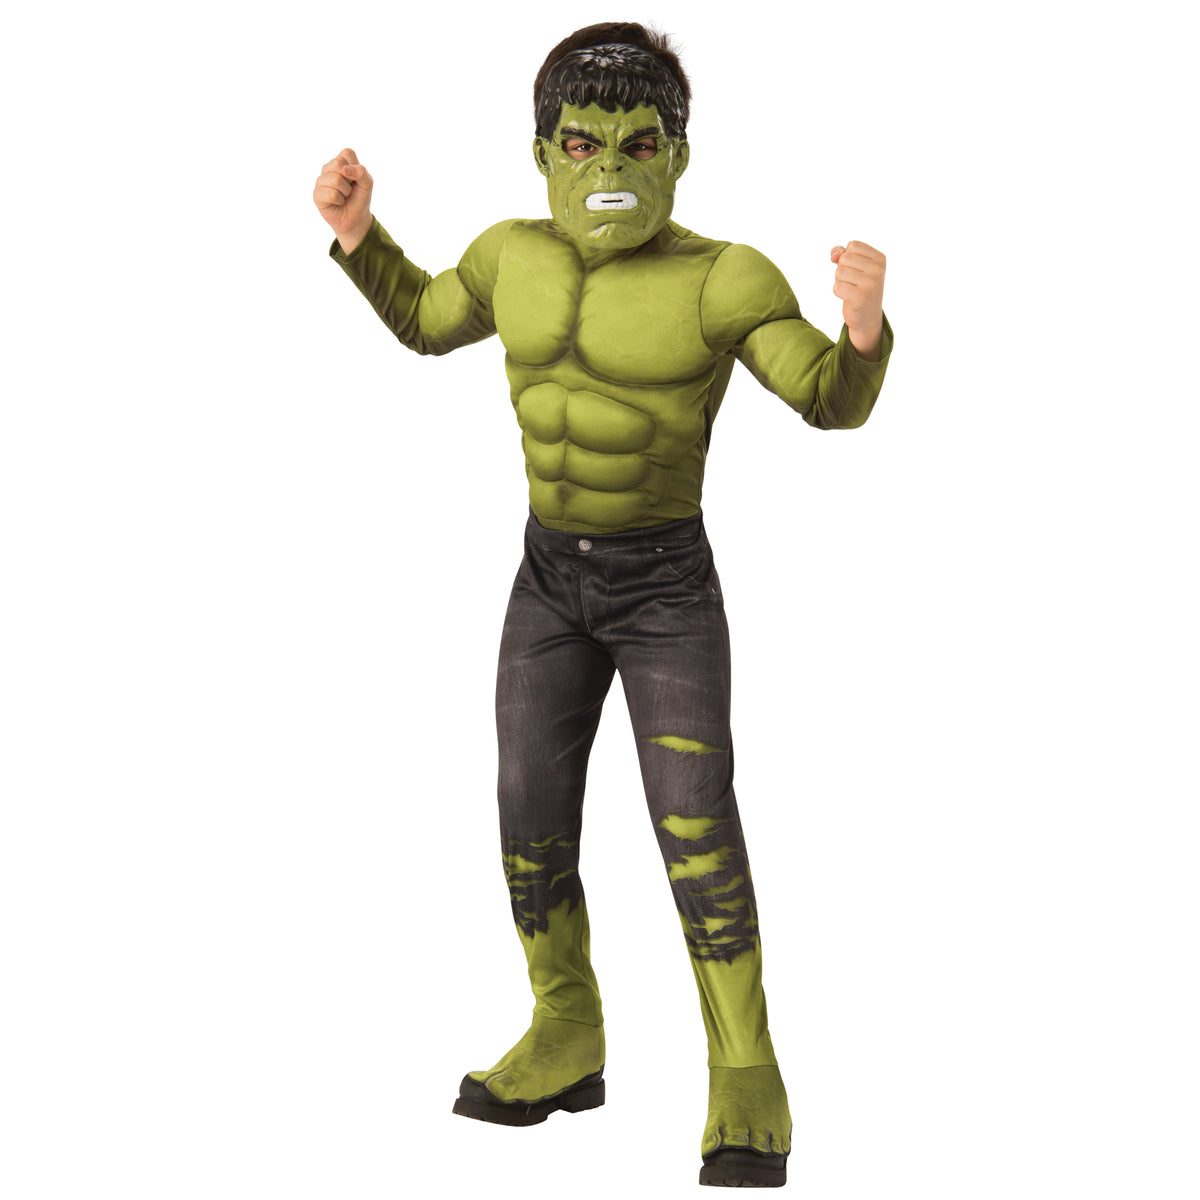 Avengers Infinity War Deluxe Hulk Child Costume